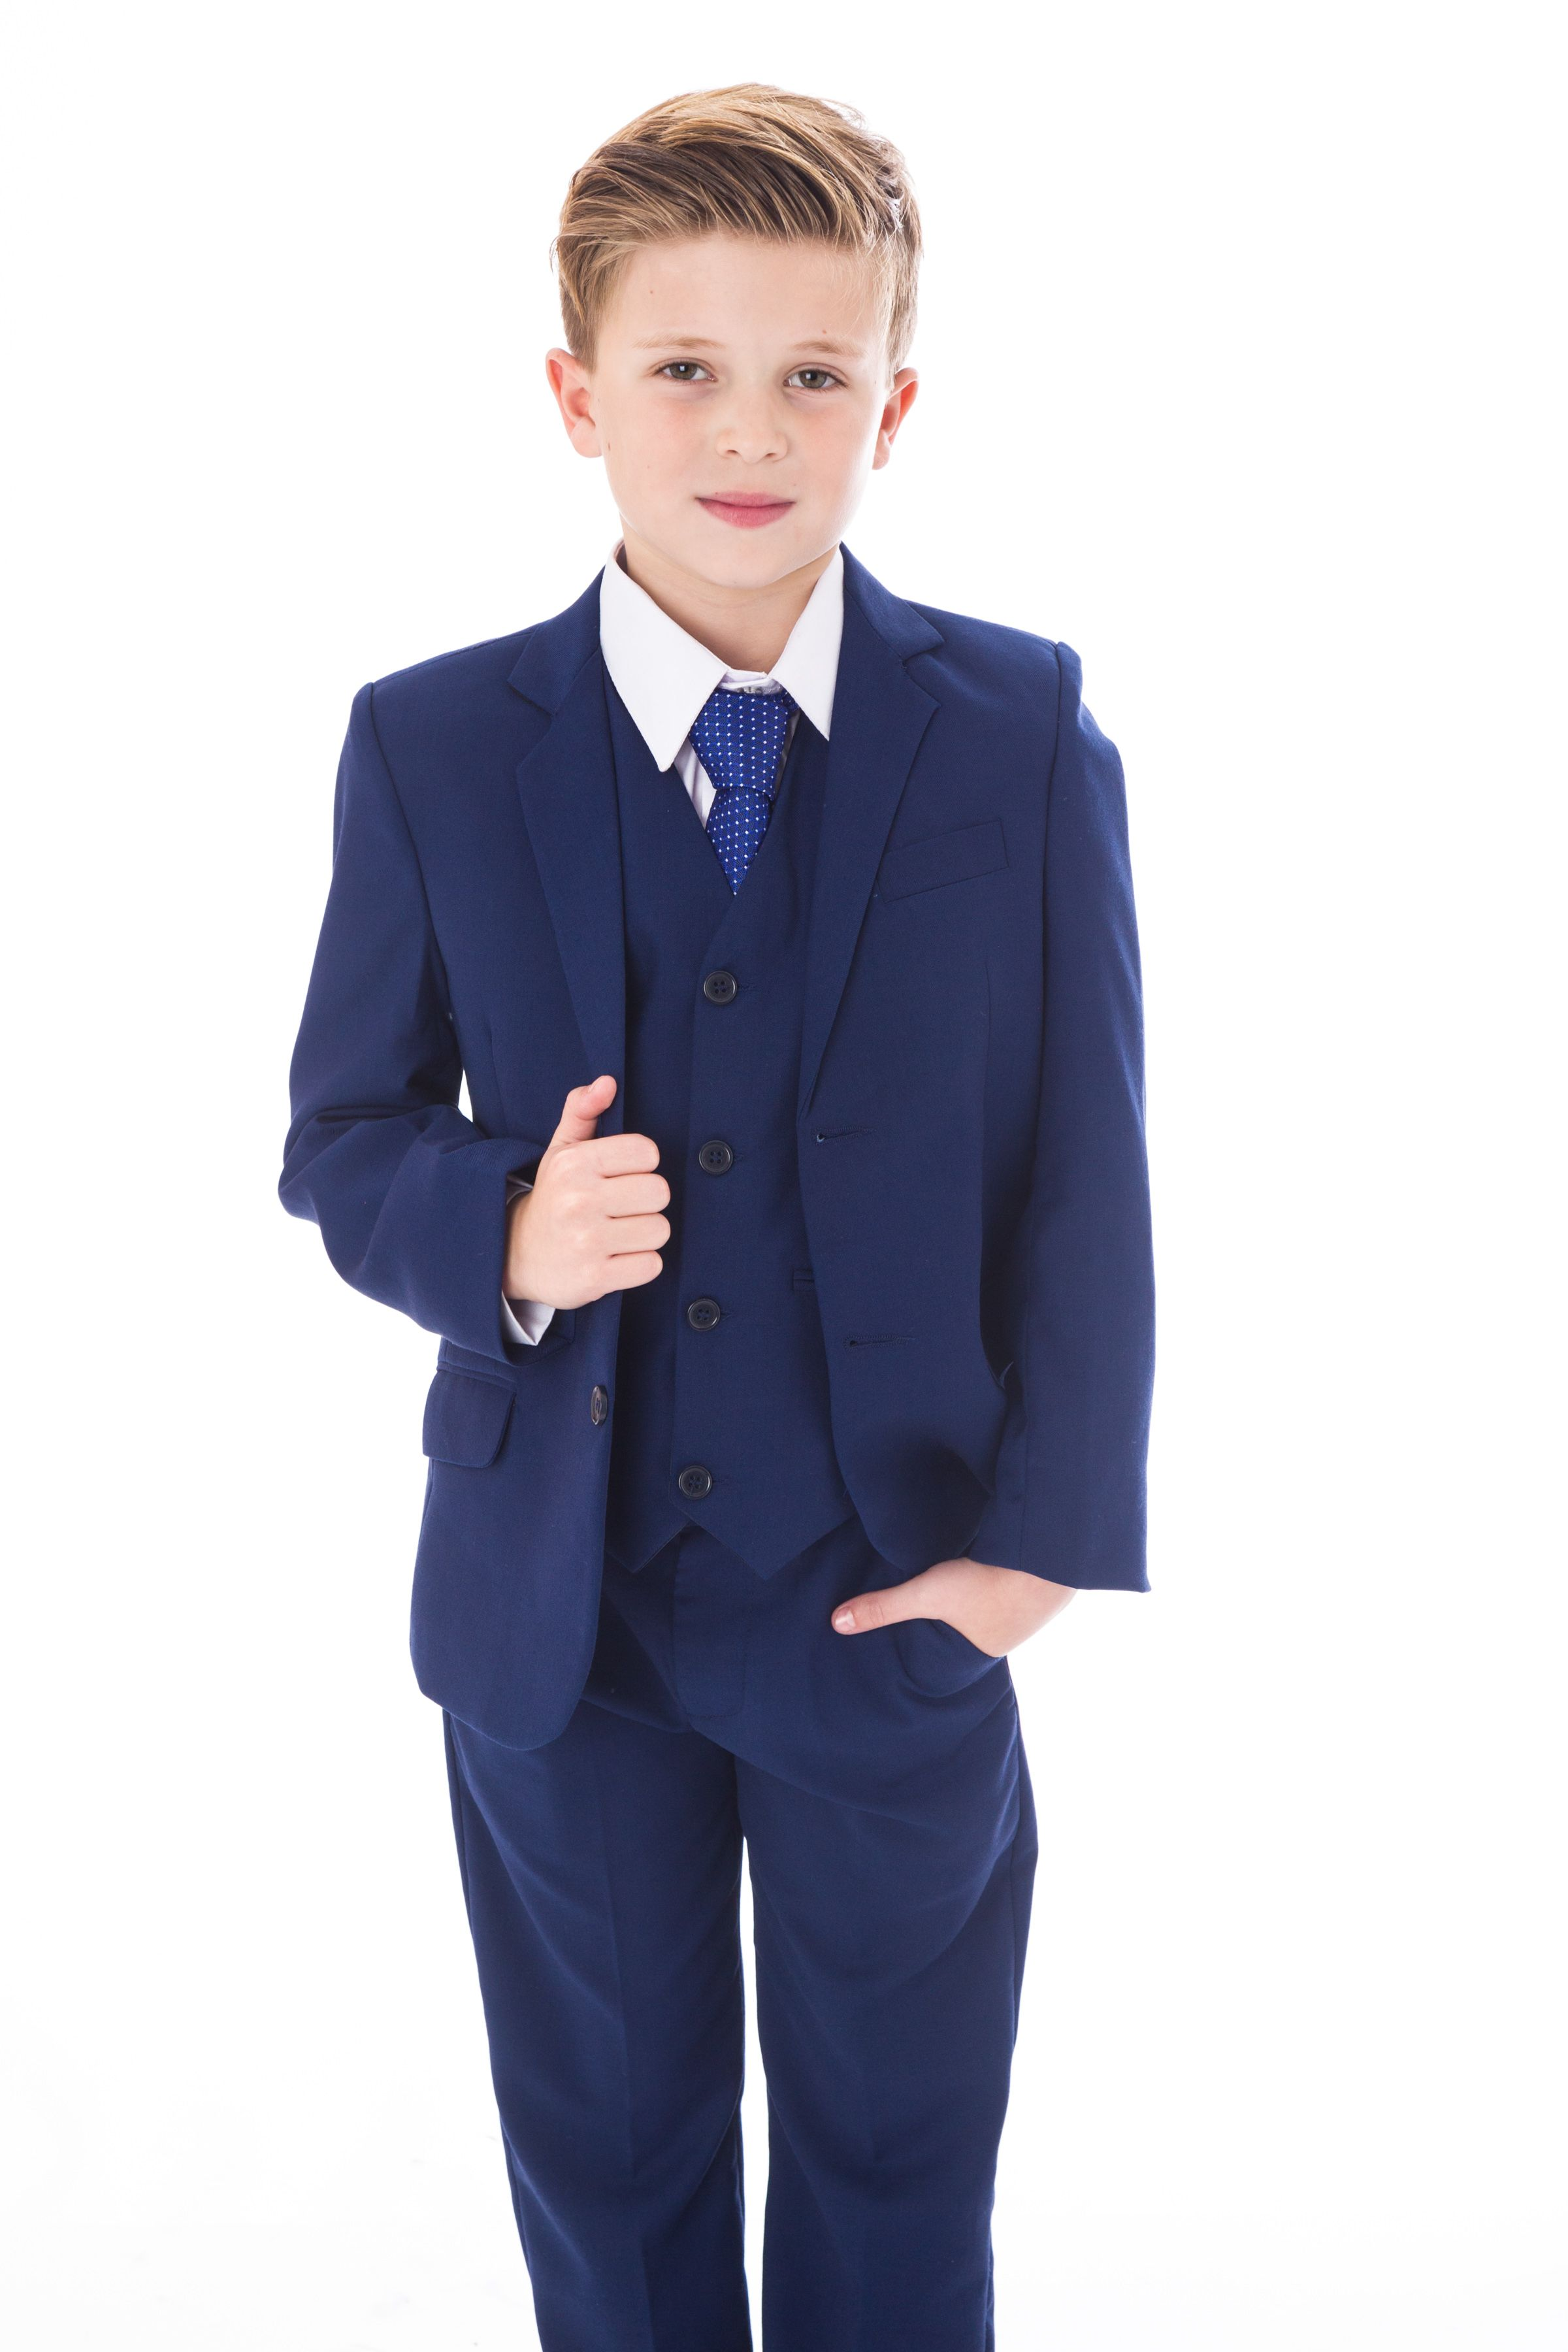 Boys Cravat Wedding Tie Formal Party One Size Single End Pale Blue Street Price Kids' Clothing, Shoes & Accs Clothing, Shoes & Accessories